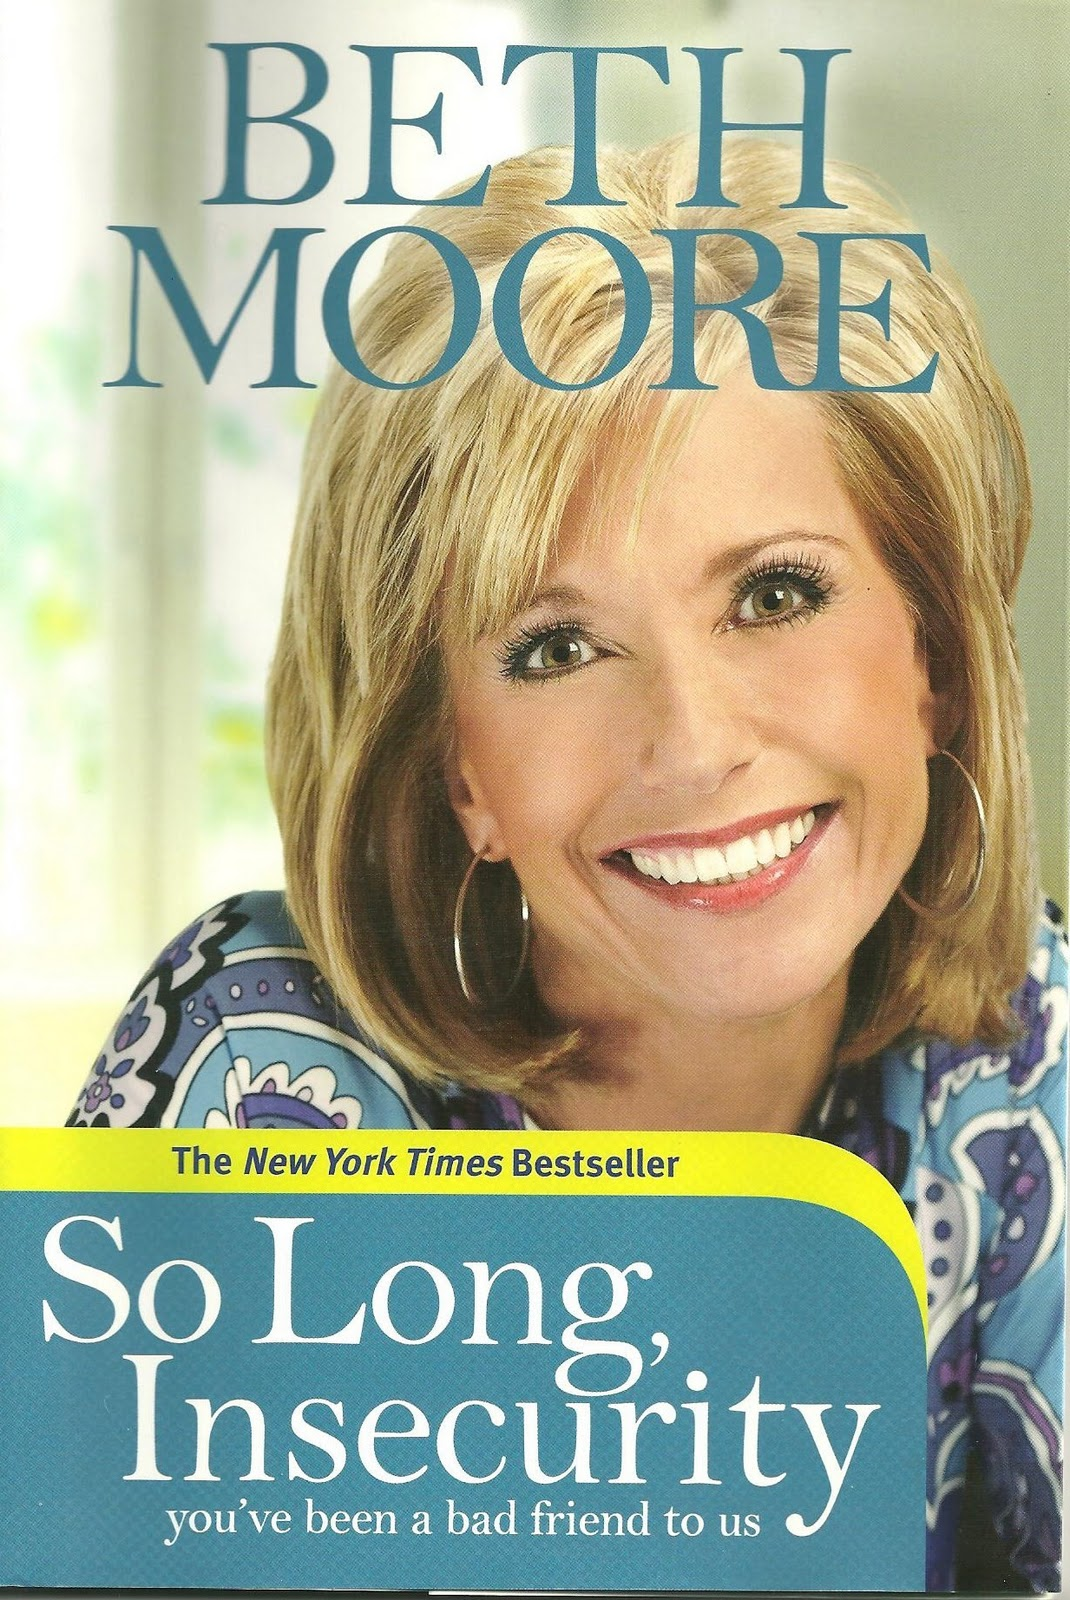 Discussion Questions for So Long Insecurity by Beth Moore ...